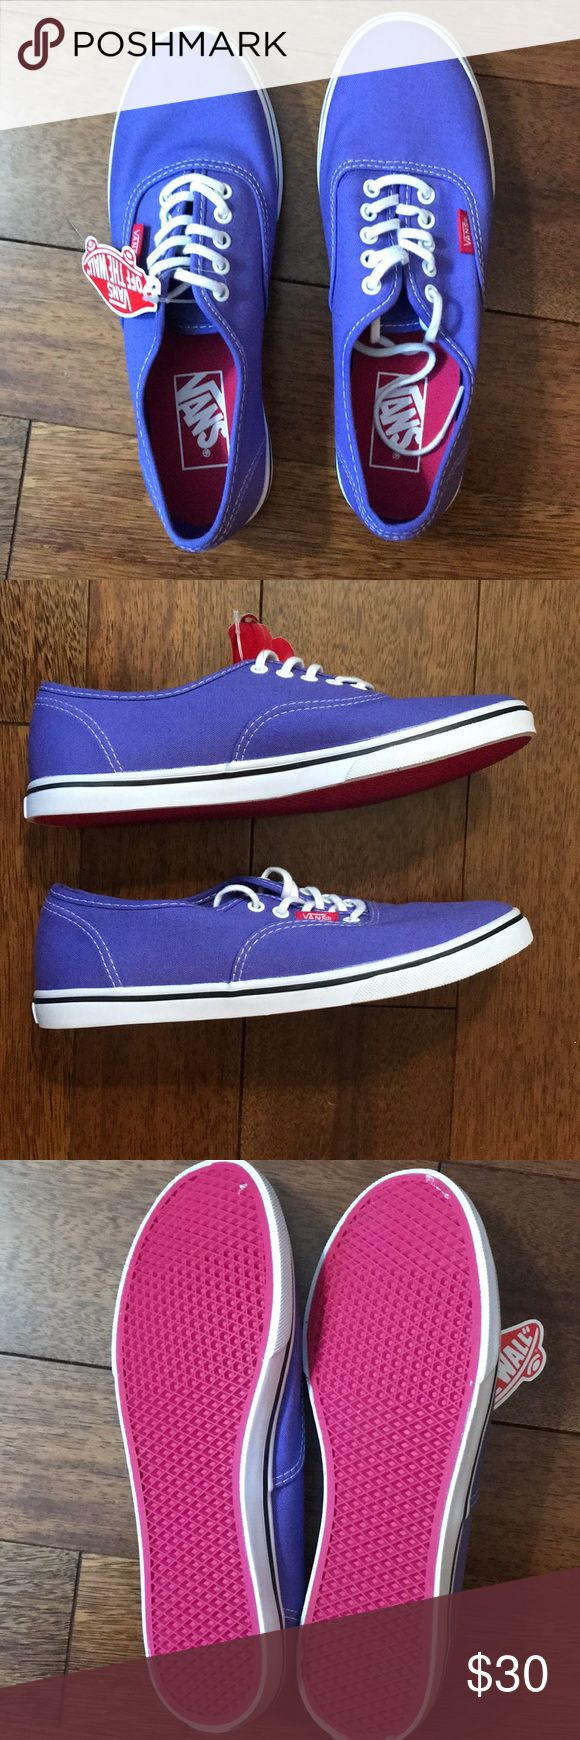 NWT Purple Vans Brand new, never worn purple Vans for sale! New with tags! Perfect condition! Vans Shoes Sneakers